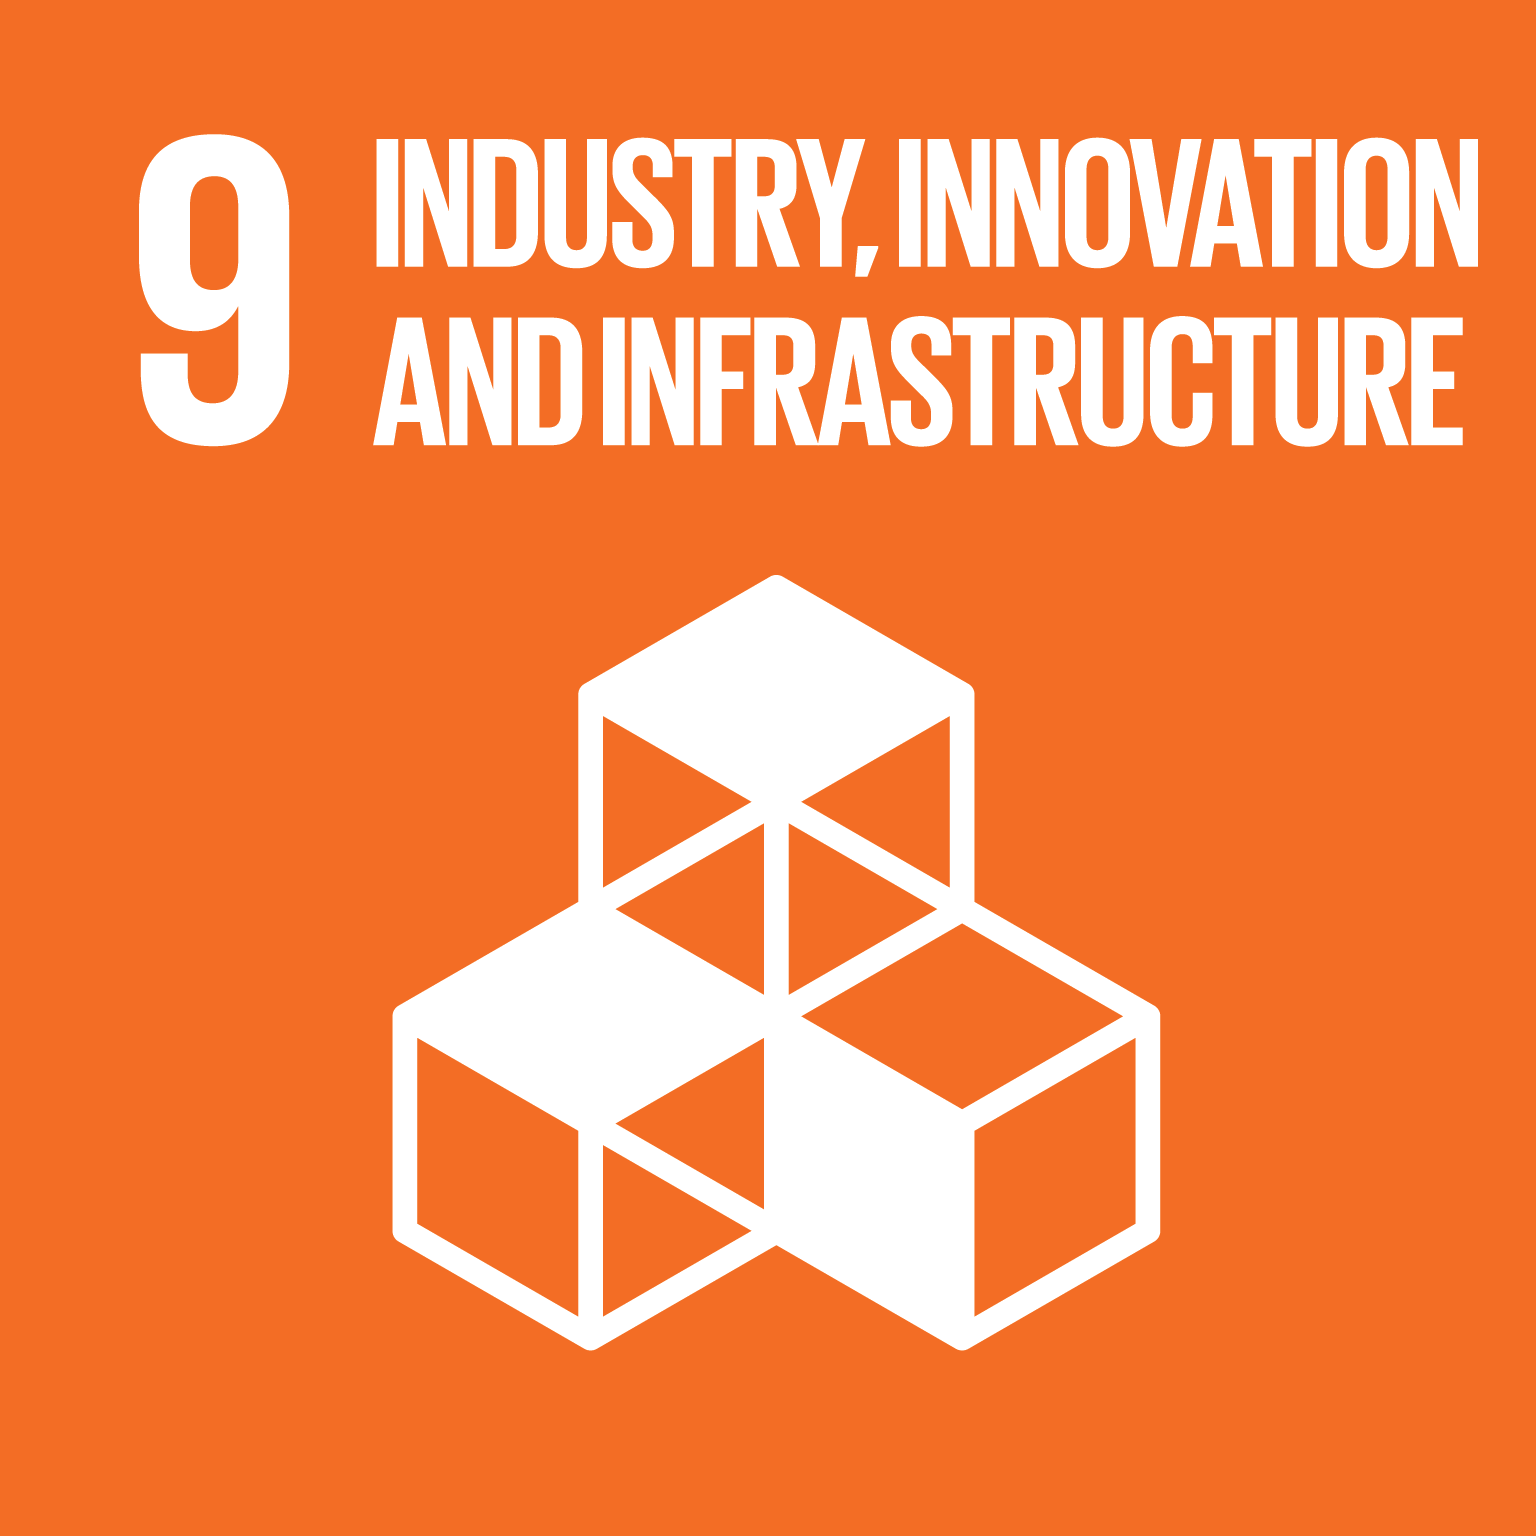 SDG 9 Posters